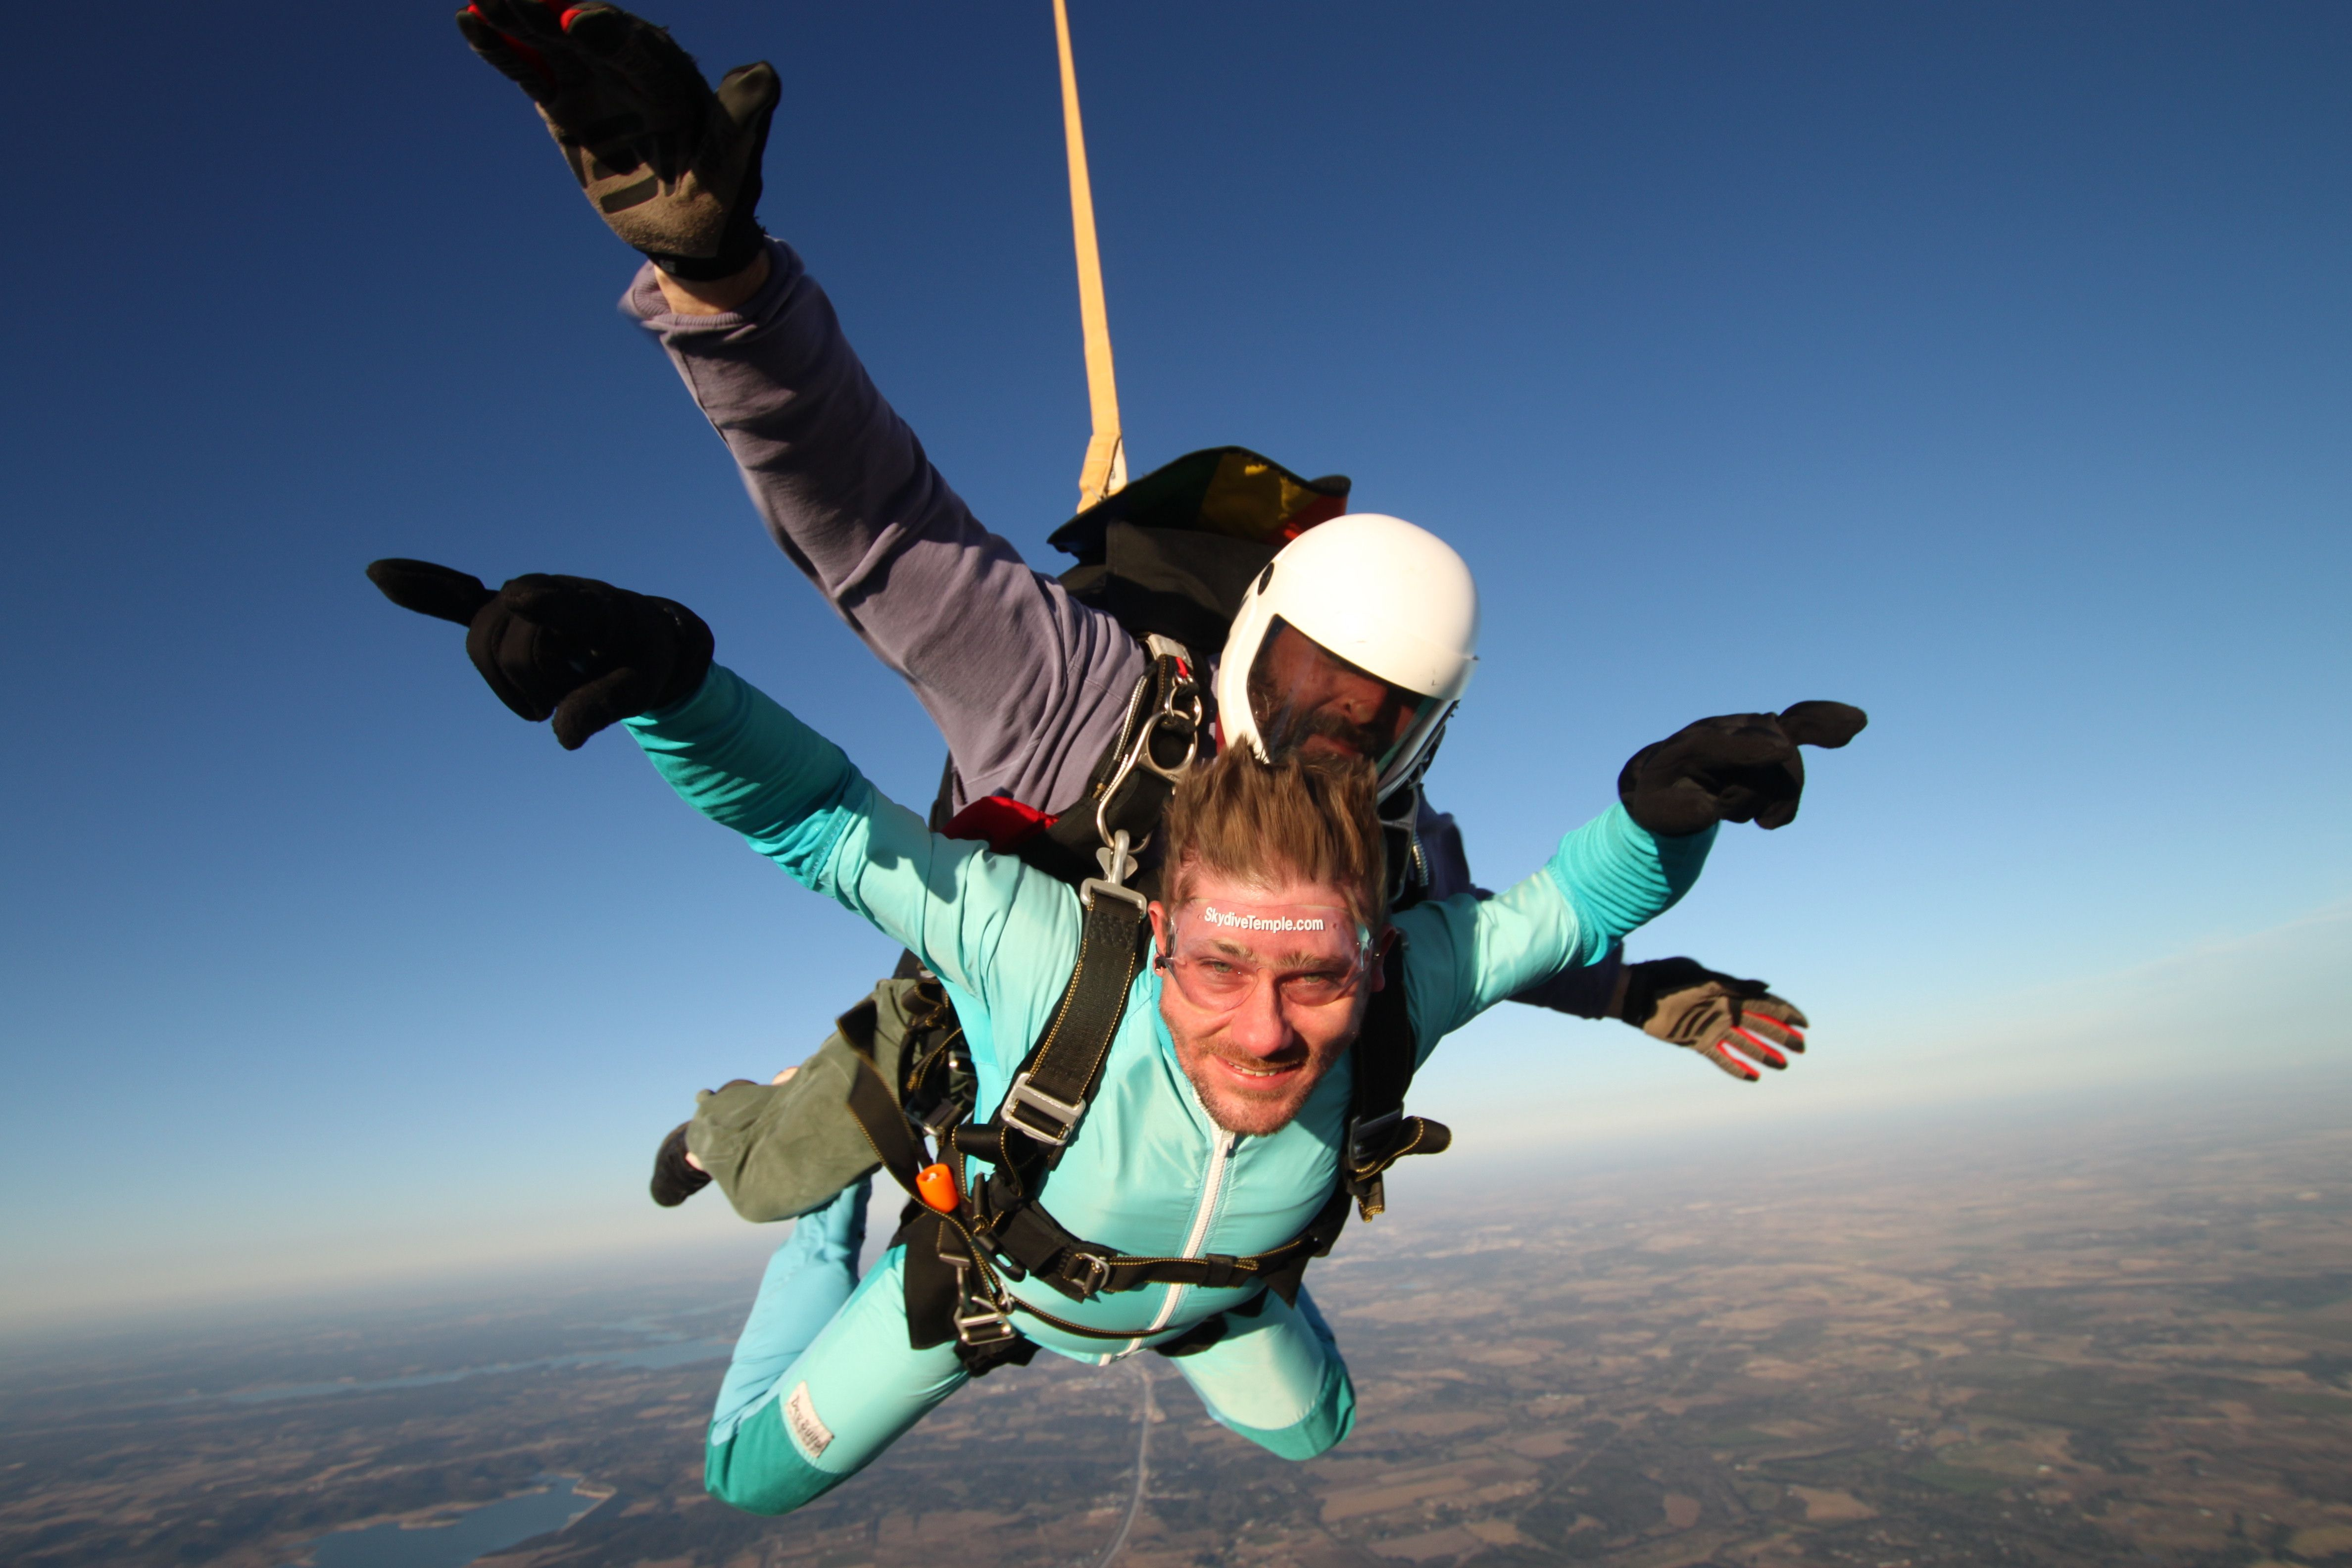 Chad Doing A Tandem Skydive After Getting Married On New Years Eve Skydive Skydiving Skydiving Paragliding Photo